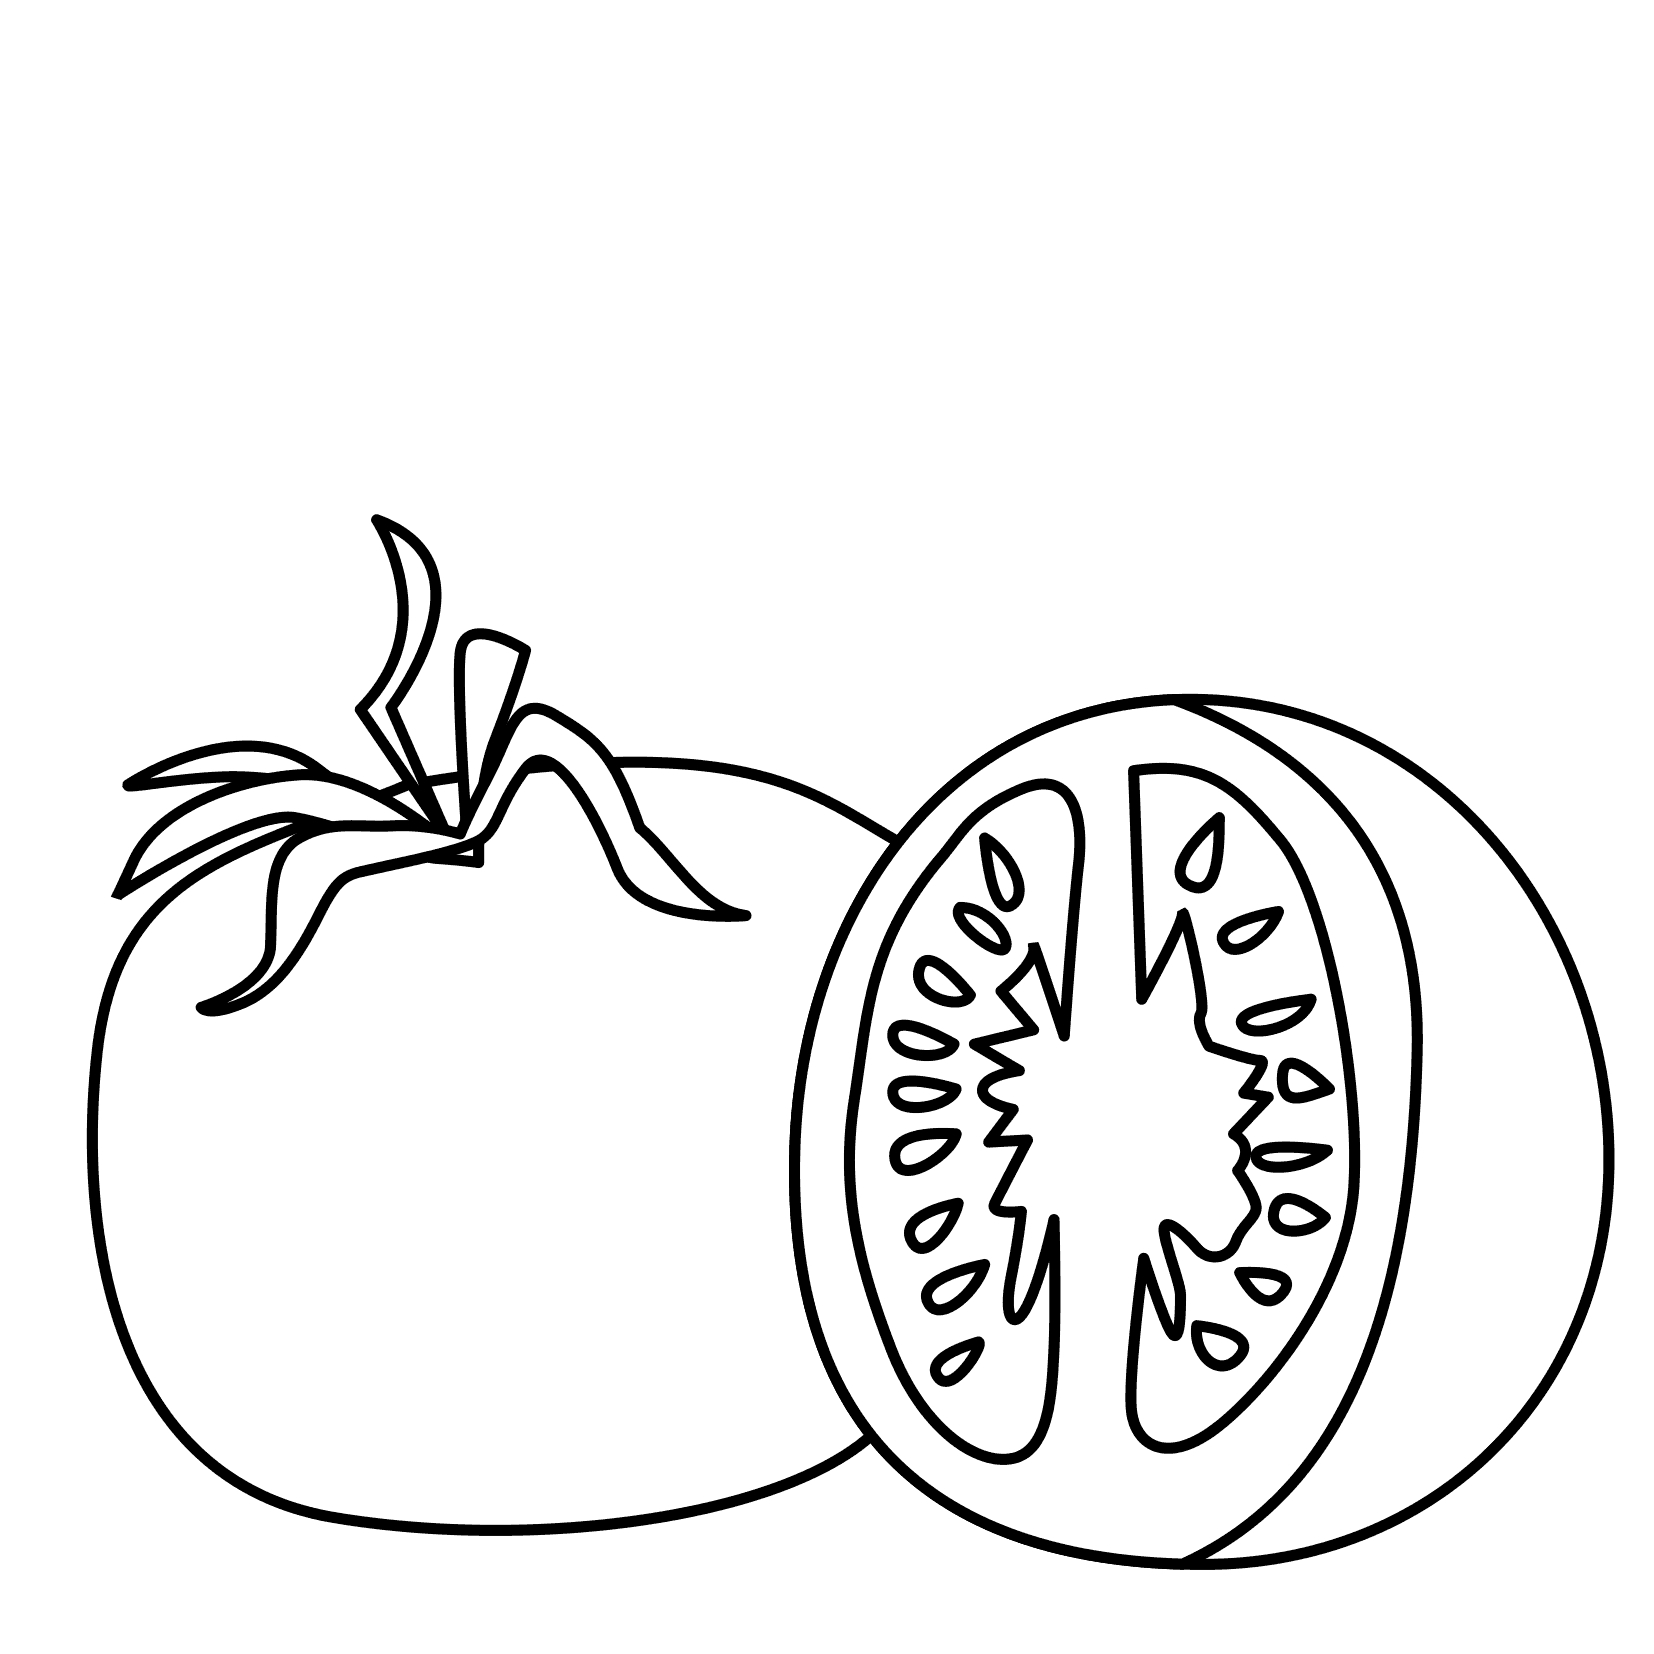 1654x1654 Unique Coloring Pages Of Kiwi Fruit Gallery Printable Coloring Sheet